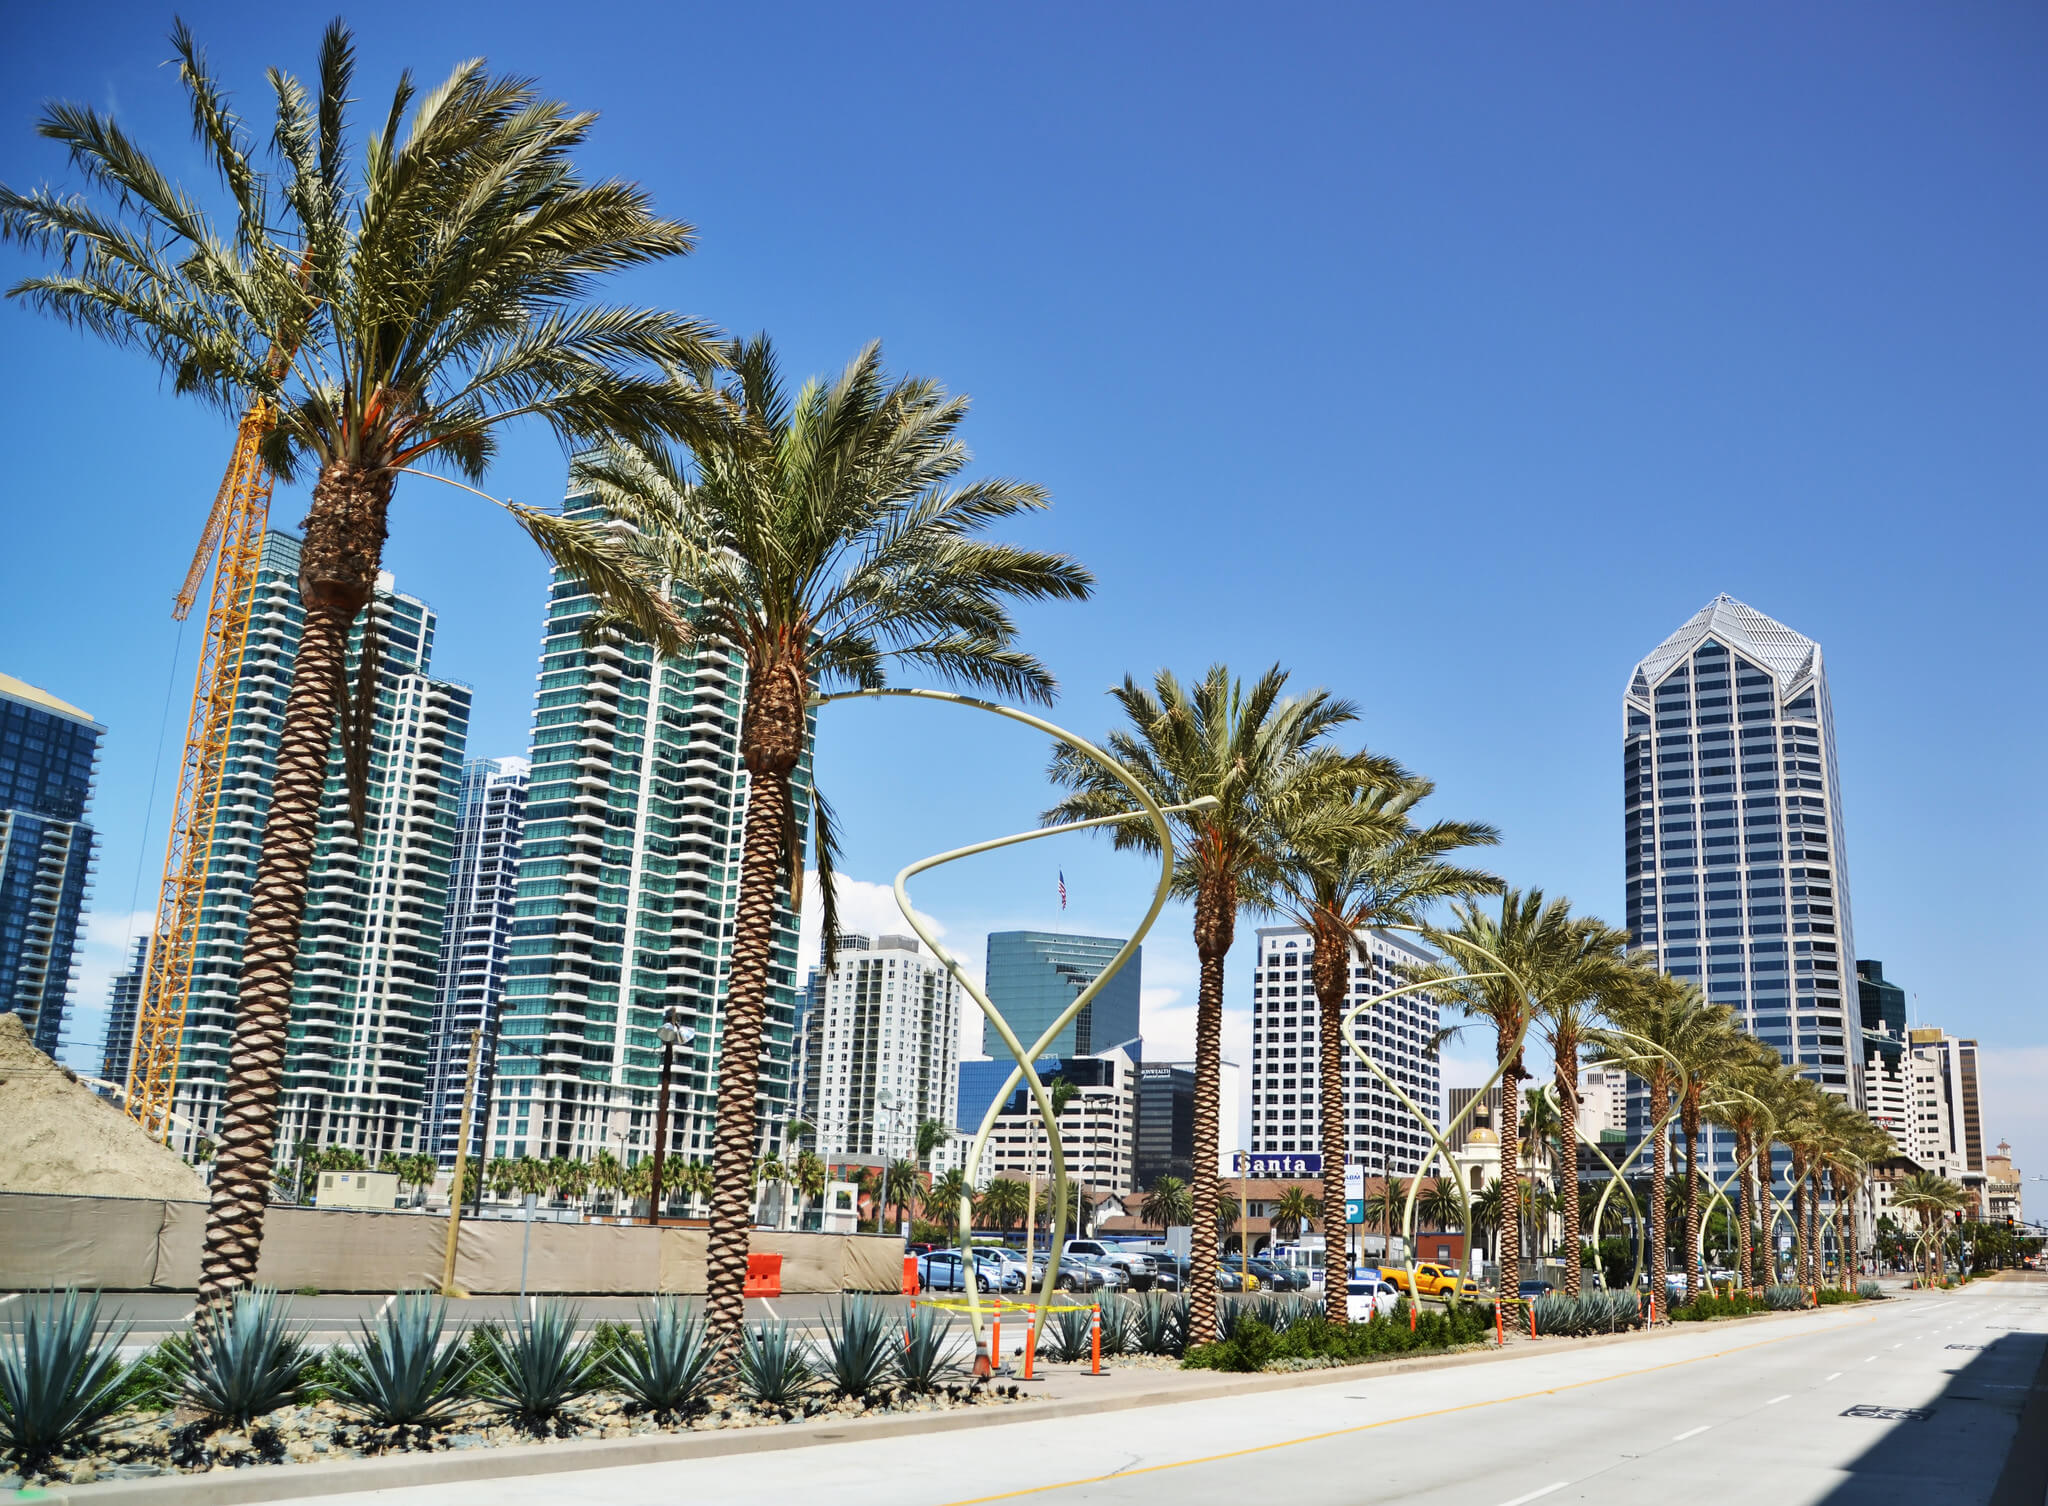 embarcadero Things to do in San Diego